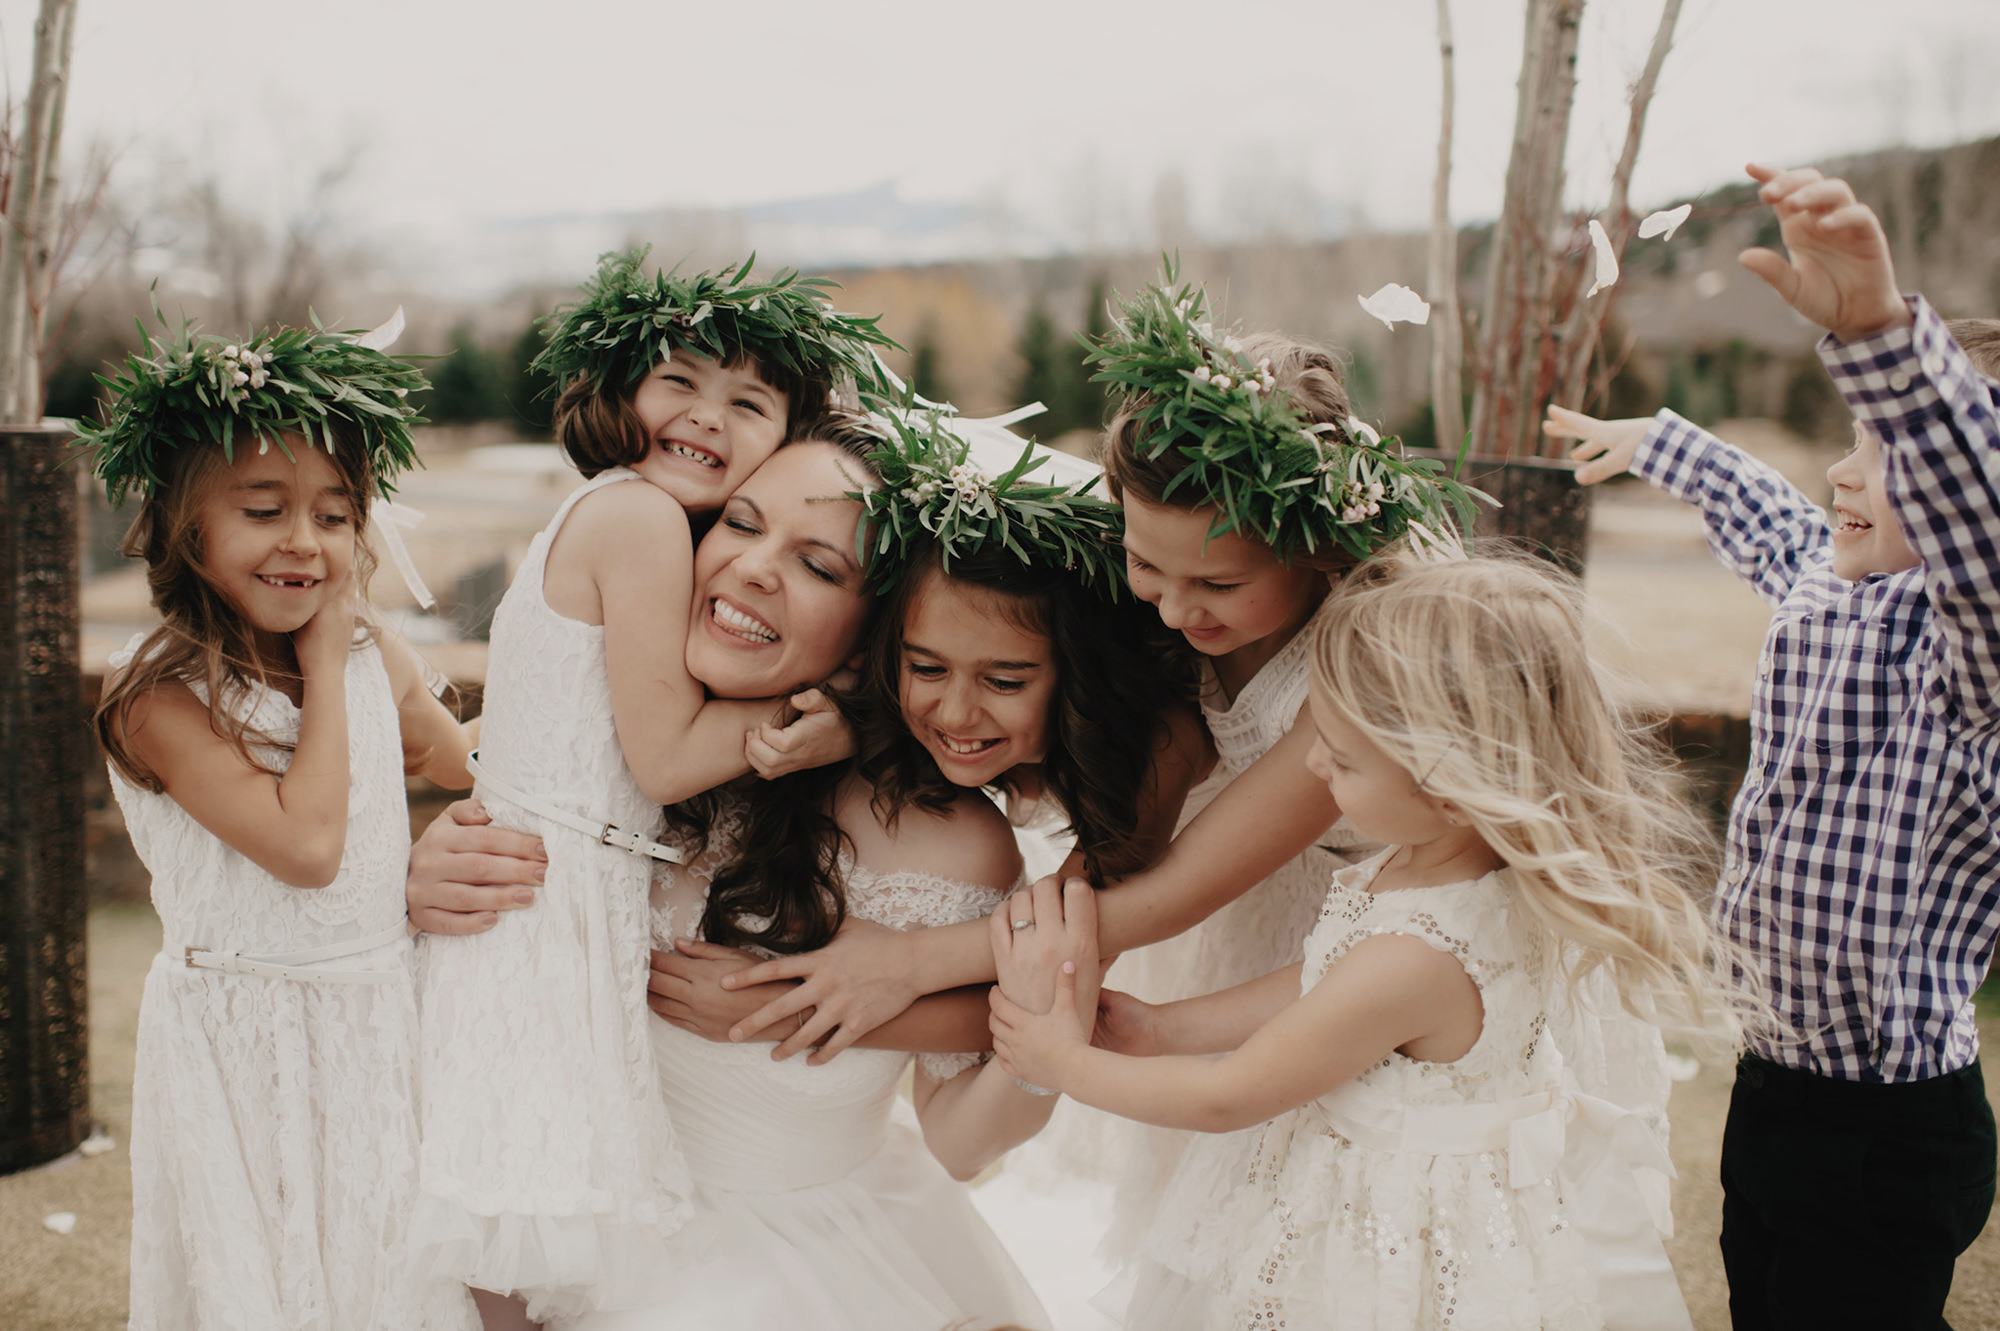 Adorable little girls with tropical grass head pieces hugging bride - photo by Kristen Marie Parker